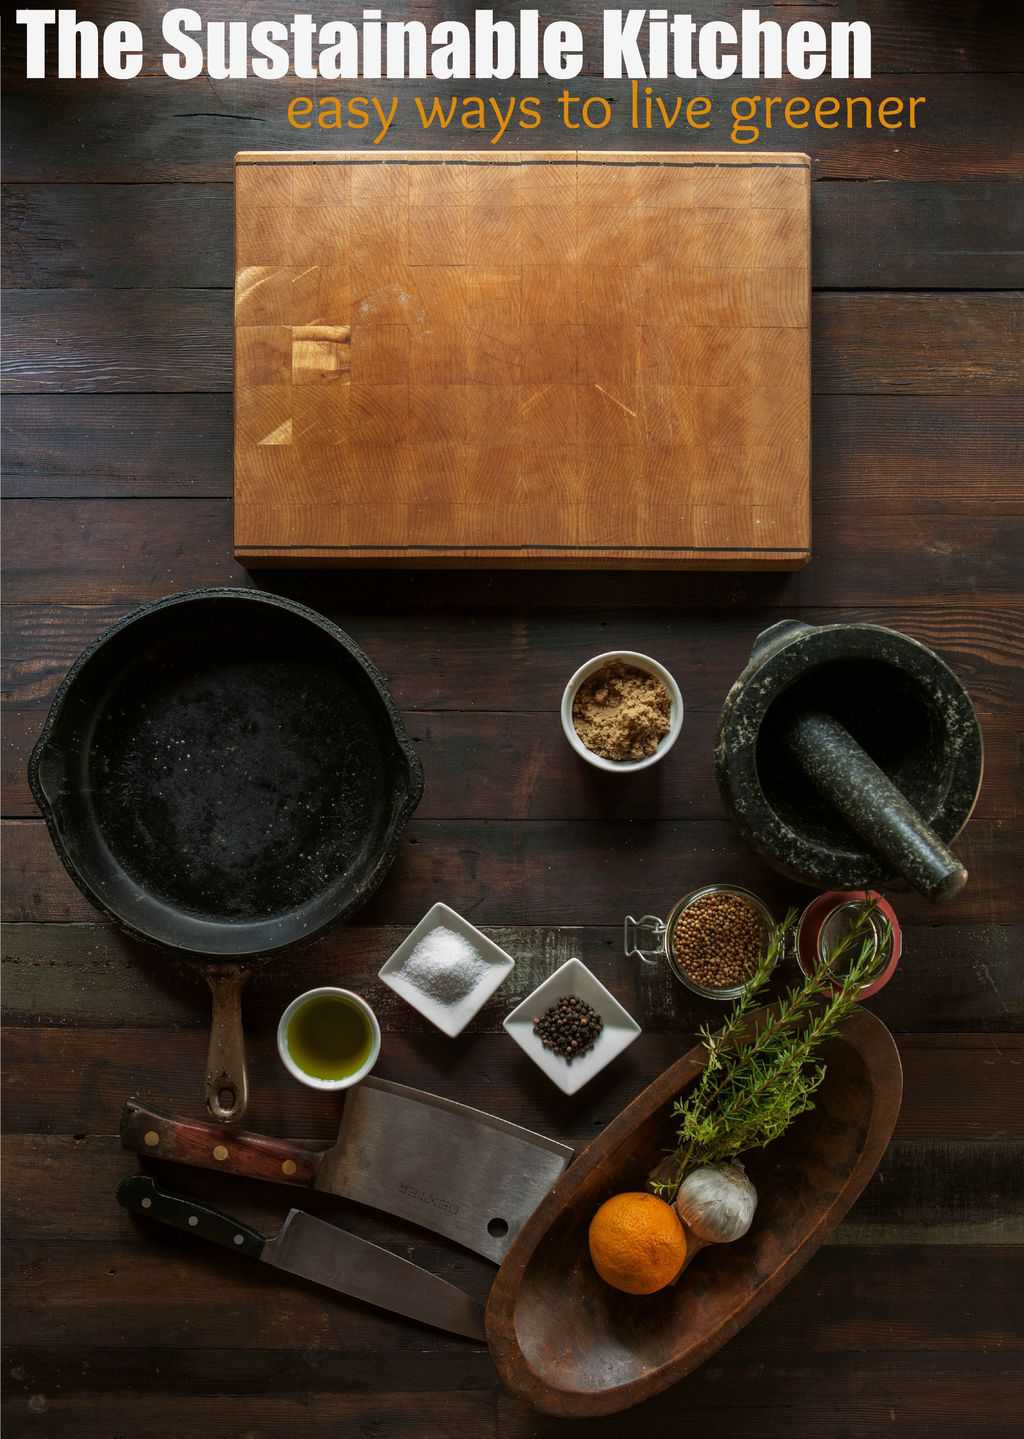 The Sustainable Kitchen: 5 Easy Ways to Live Greener!